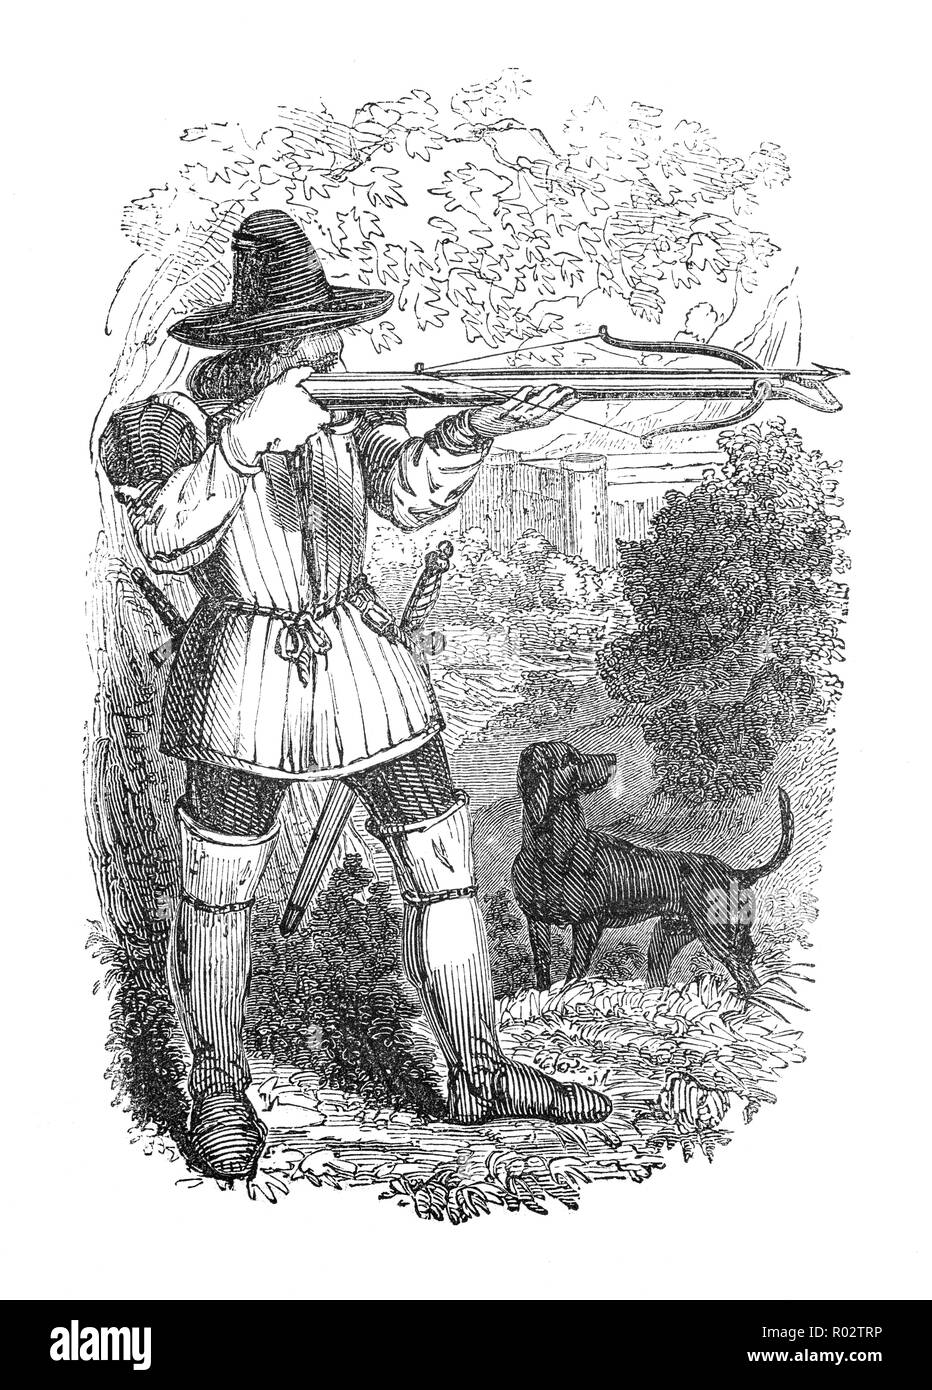 A medieval English crossbow-man out hunting. The use of the crossbow grew by leaps and bounds between the 13th and mid-15th centuries. The reasons for this steady rise in popularity were that the device was inexpensive to make and easy to master and began to appear as a lethal hand-held weapon. The reputation ofthe crossbowman was mixed as they were seen as valued members of an army often commanding twice the wages of ordinary foot soldiers. - Stock Image